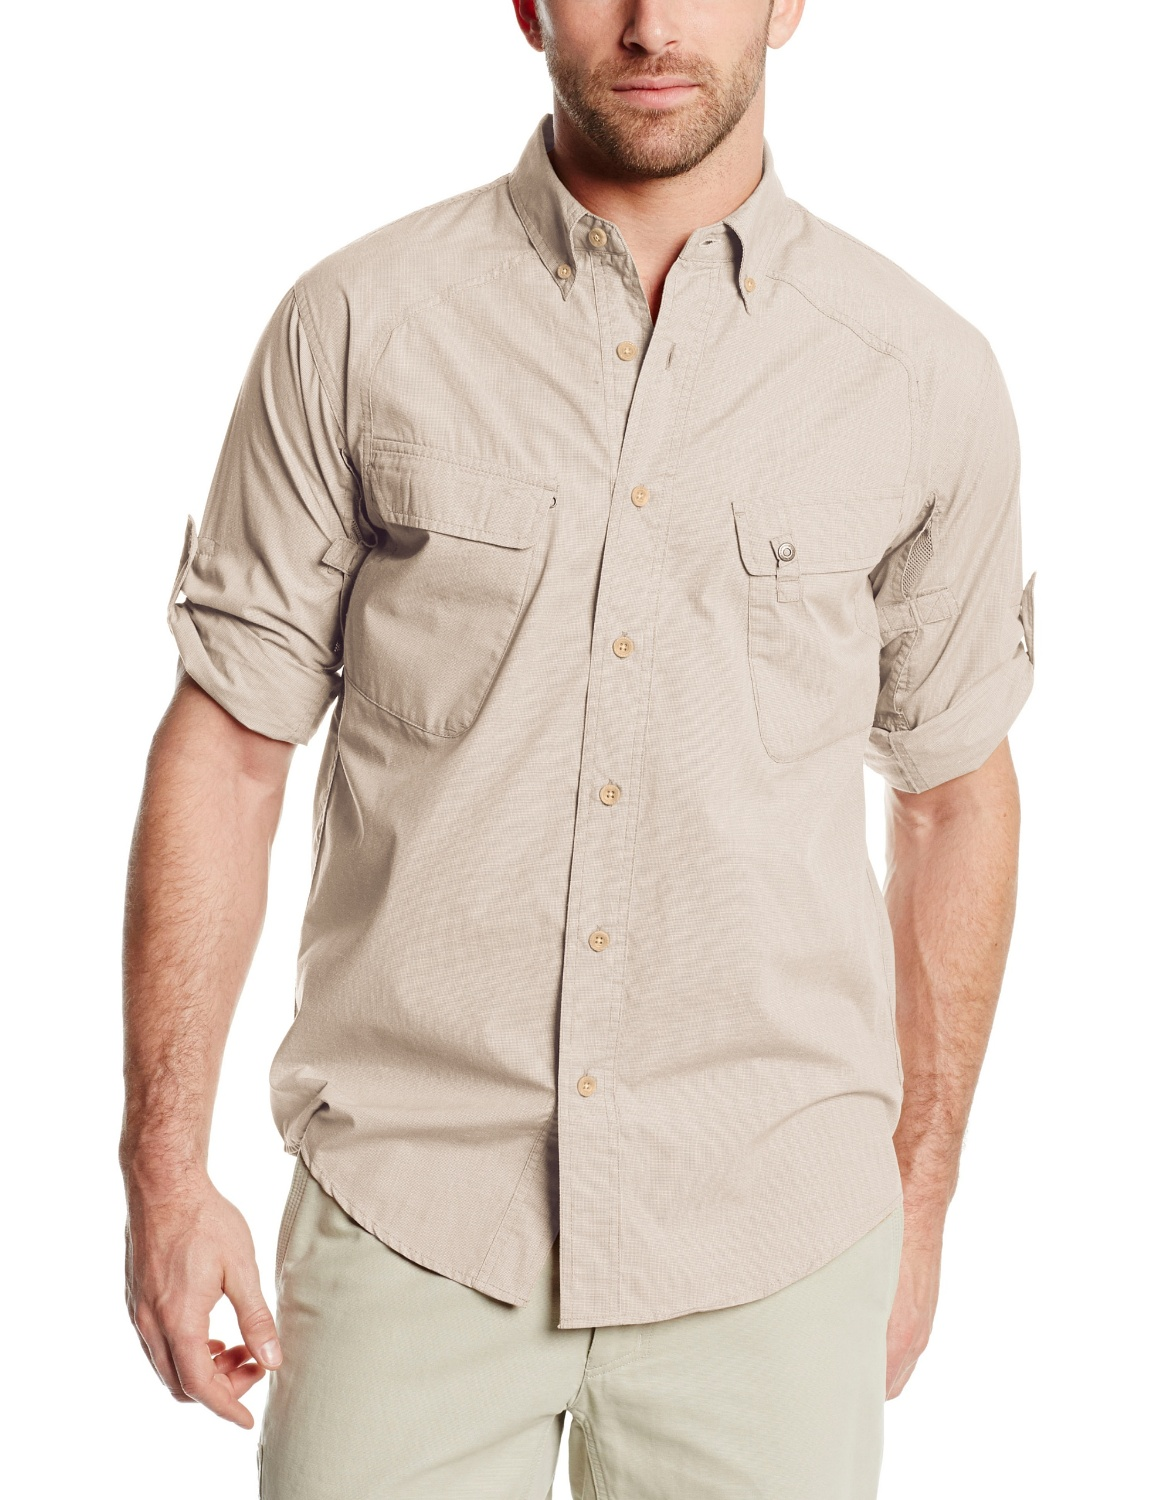 mosquito-repellent-clothes-mens-button-down